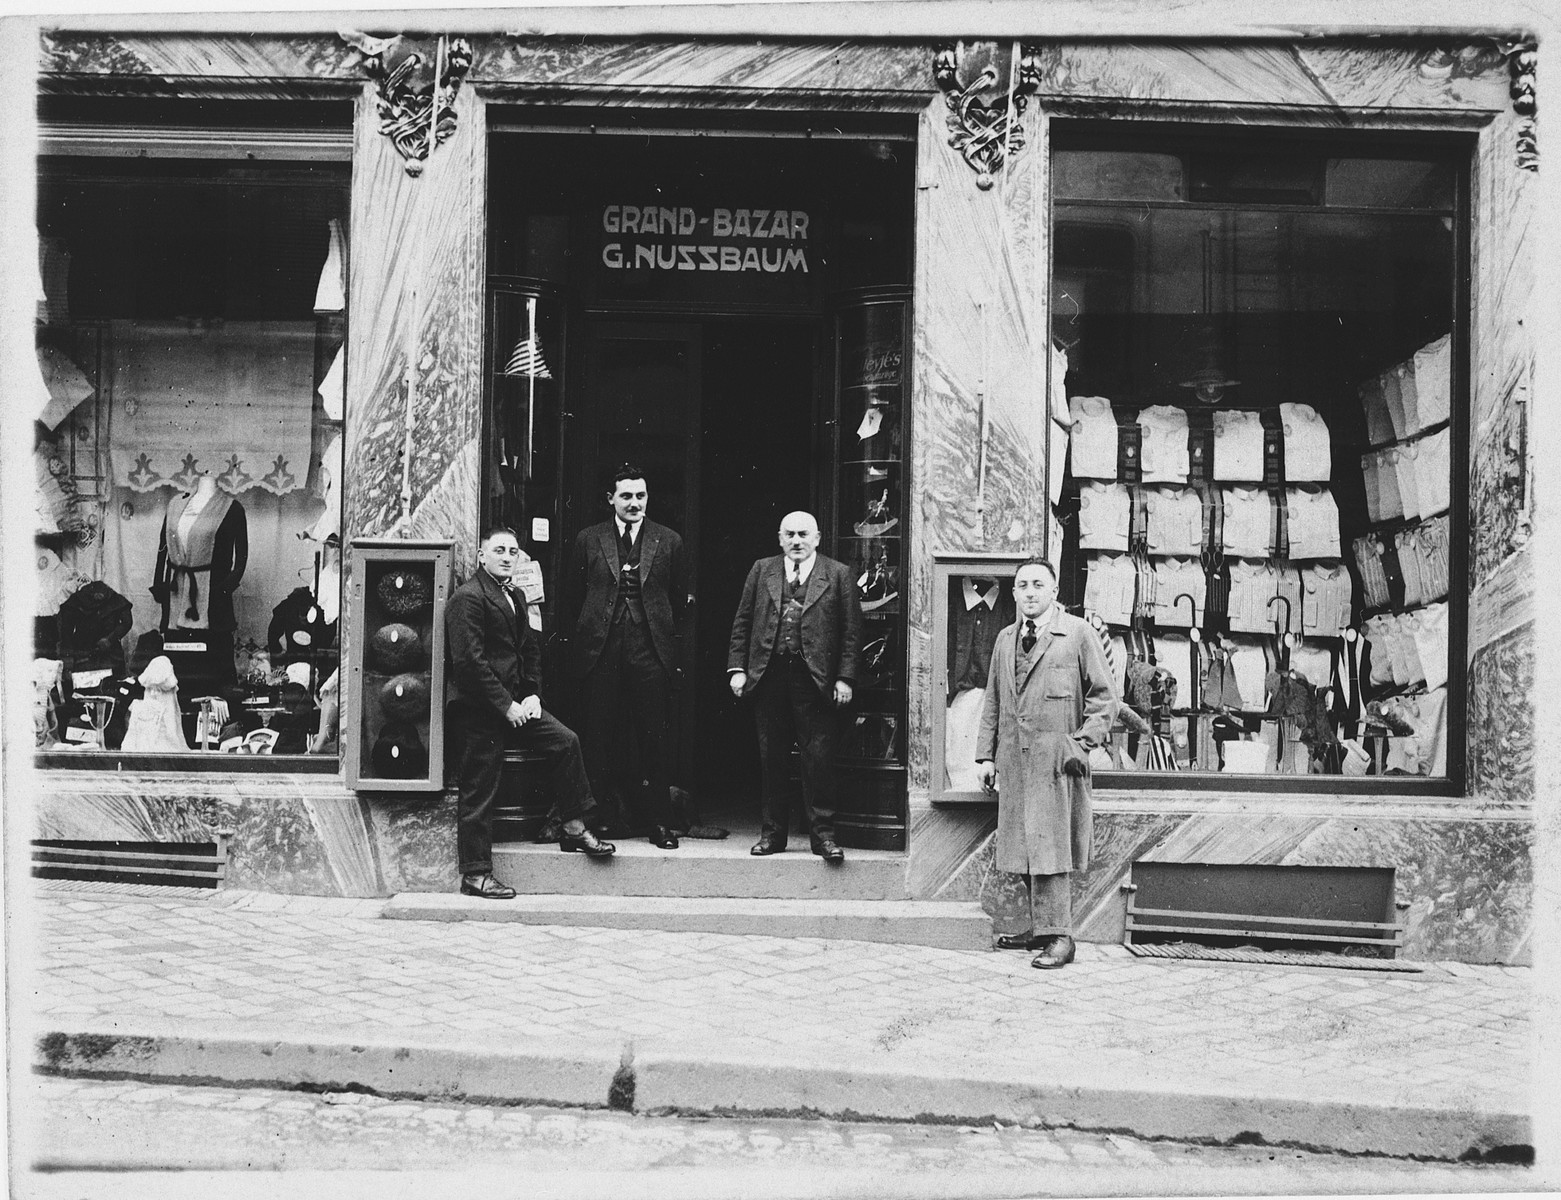 Gustave Nussbaum poses with others in front of his clothing store, Grand-Bazar G. Nussbaum, in Luxembourg.